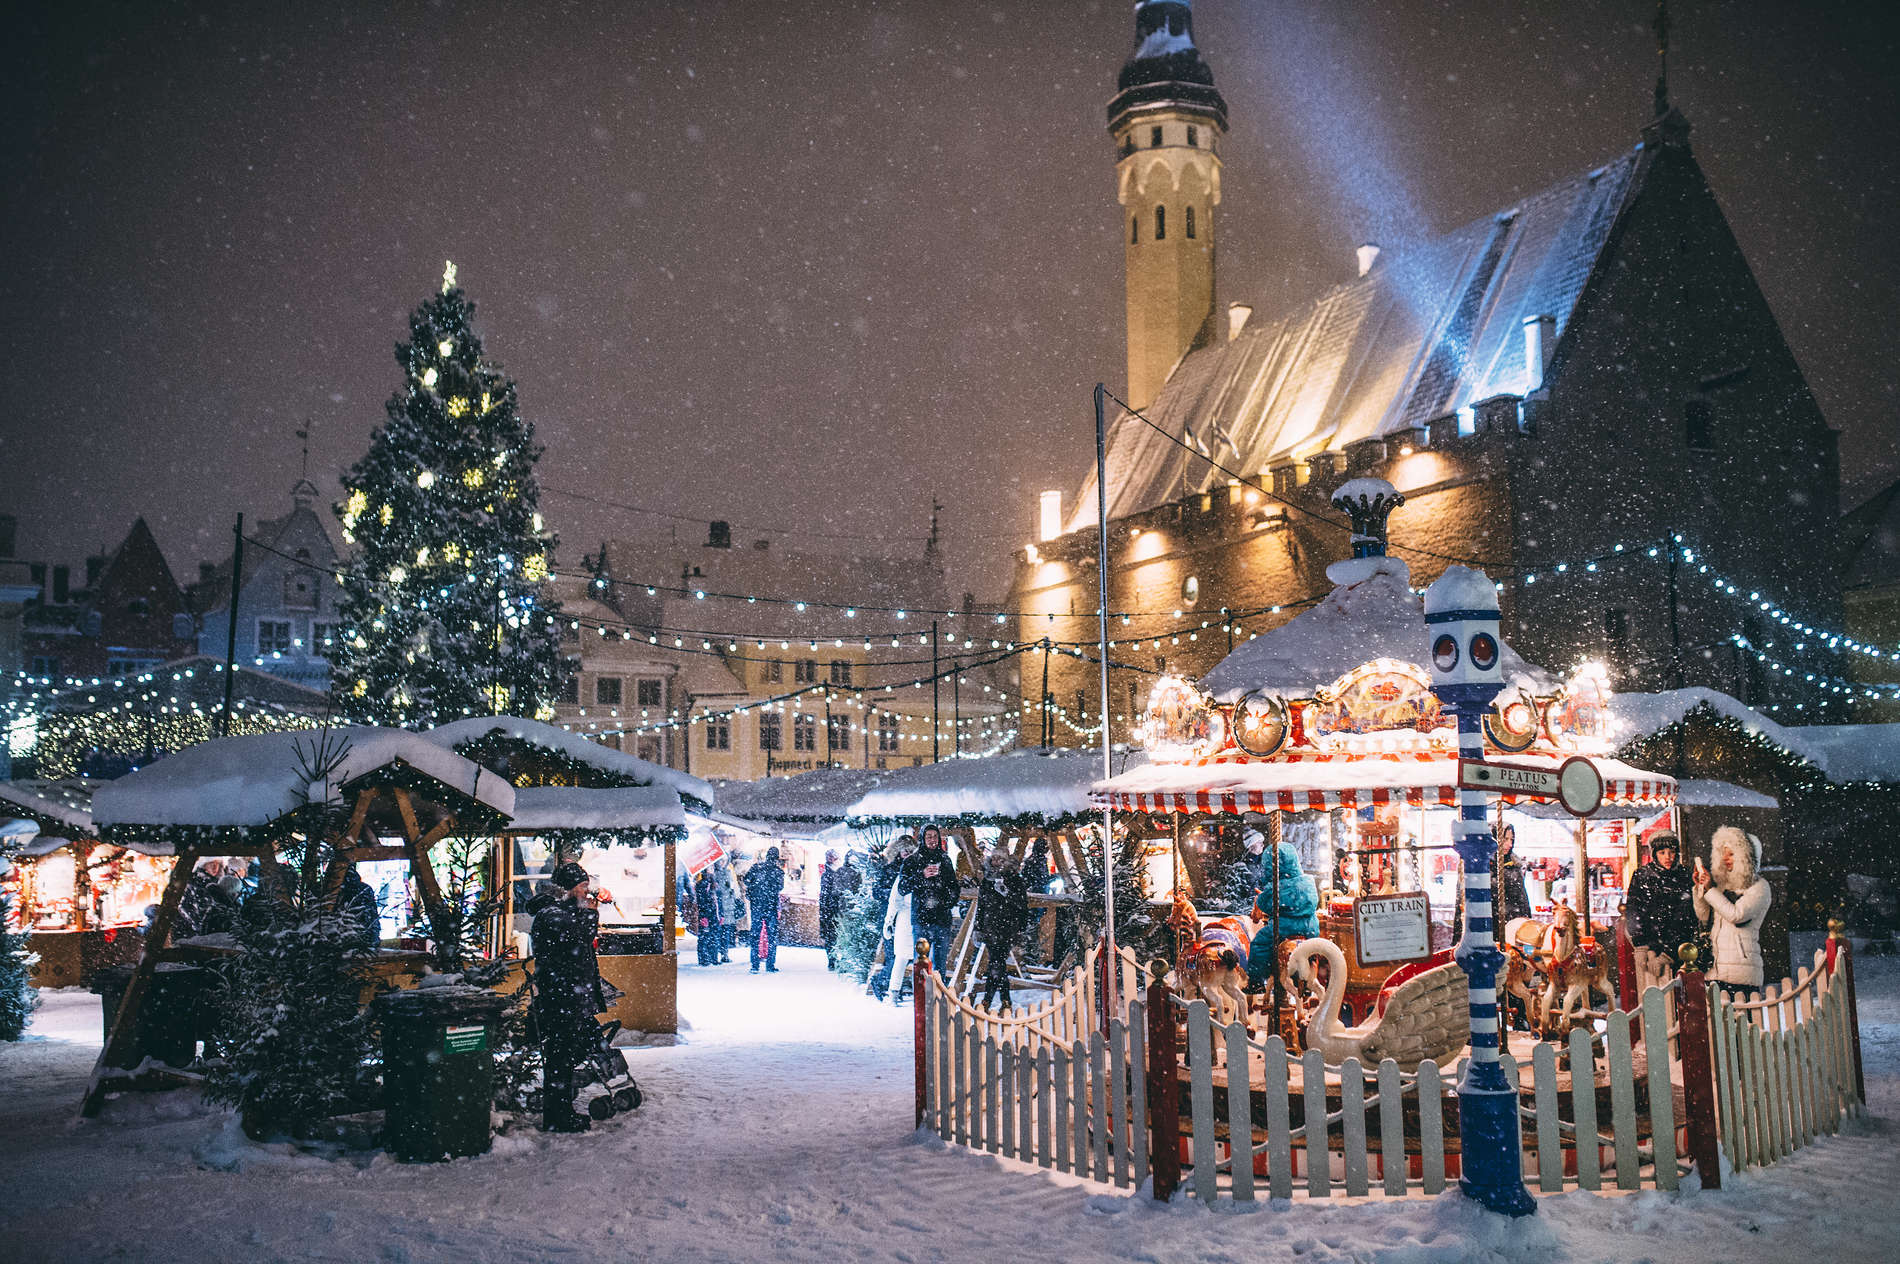 Carousel at the Christmas Market of Tallinn, Estonia. Photo by: Jake Farra